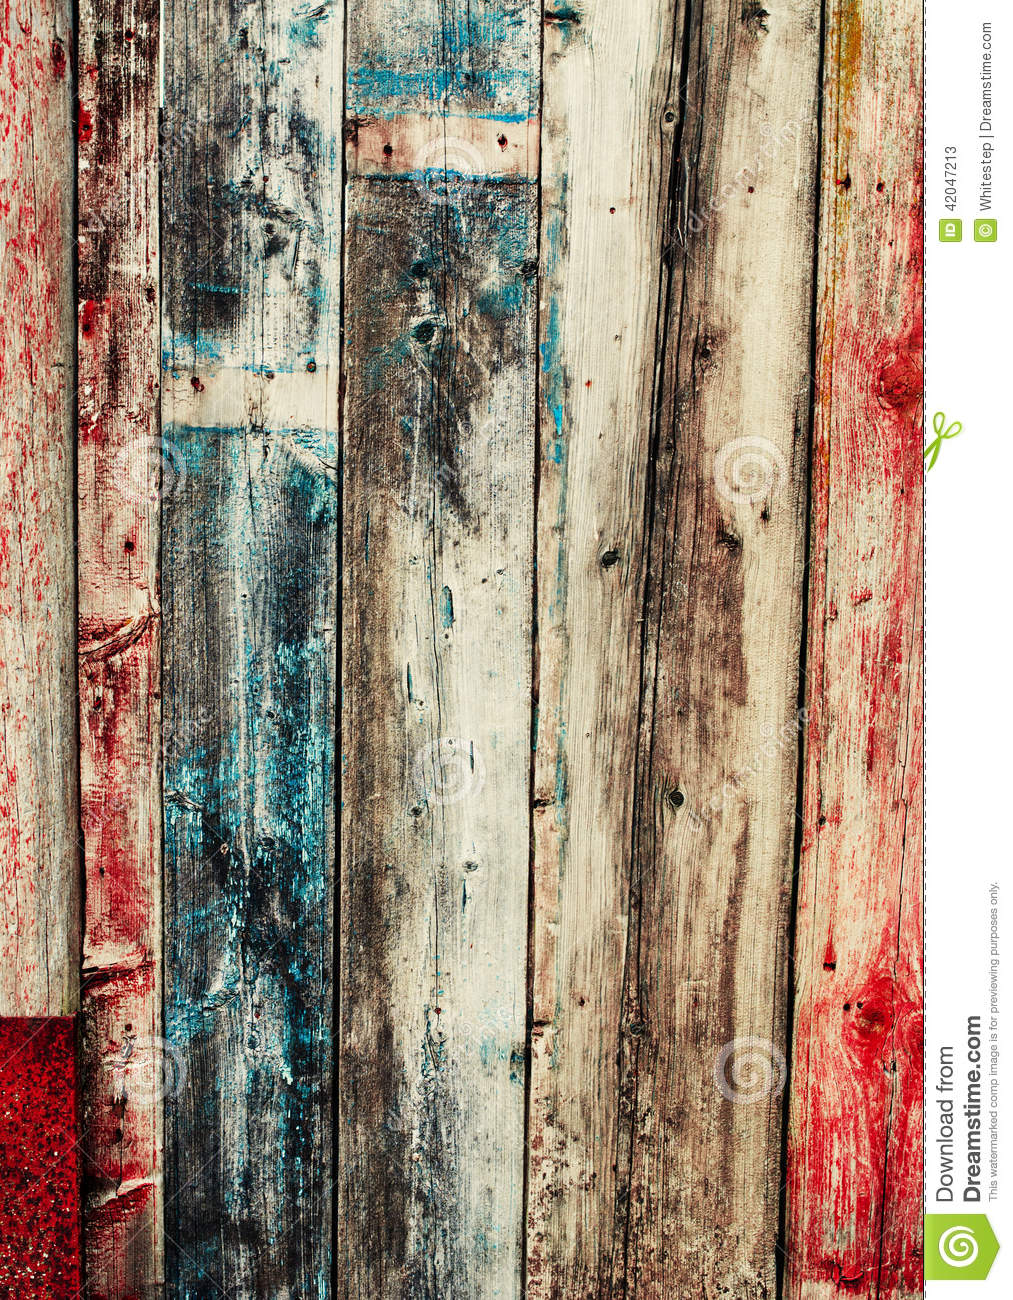 Old Colored Wooden Planks Cracked Paint Stock Image